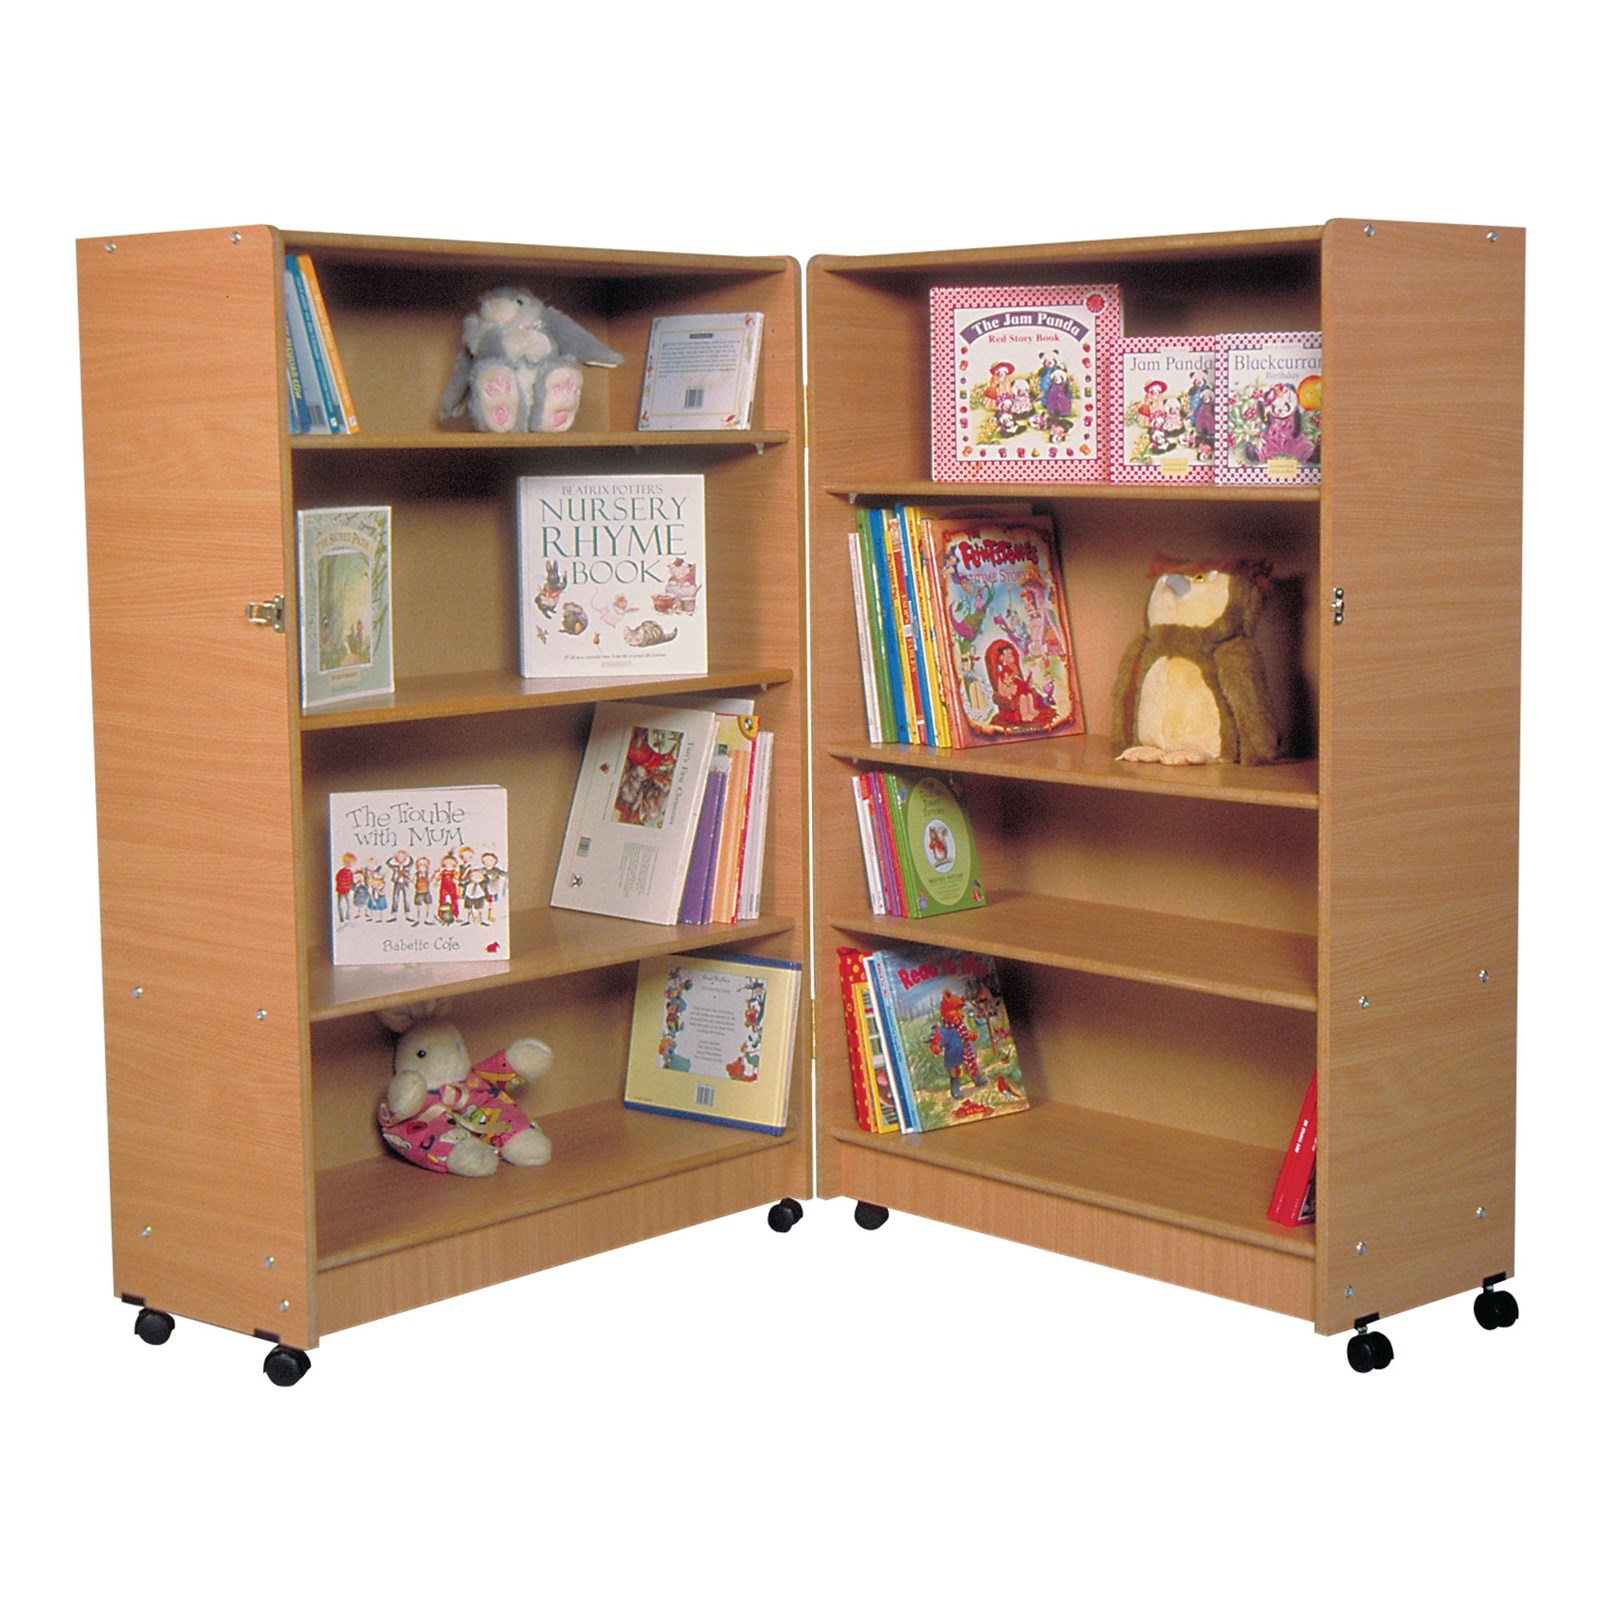 to w locking zoom hover jofran trolley casters bookcase in loftworks